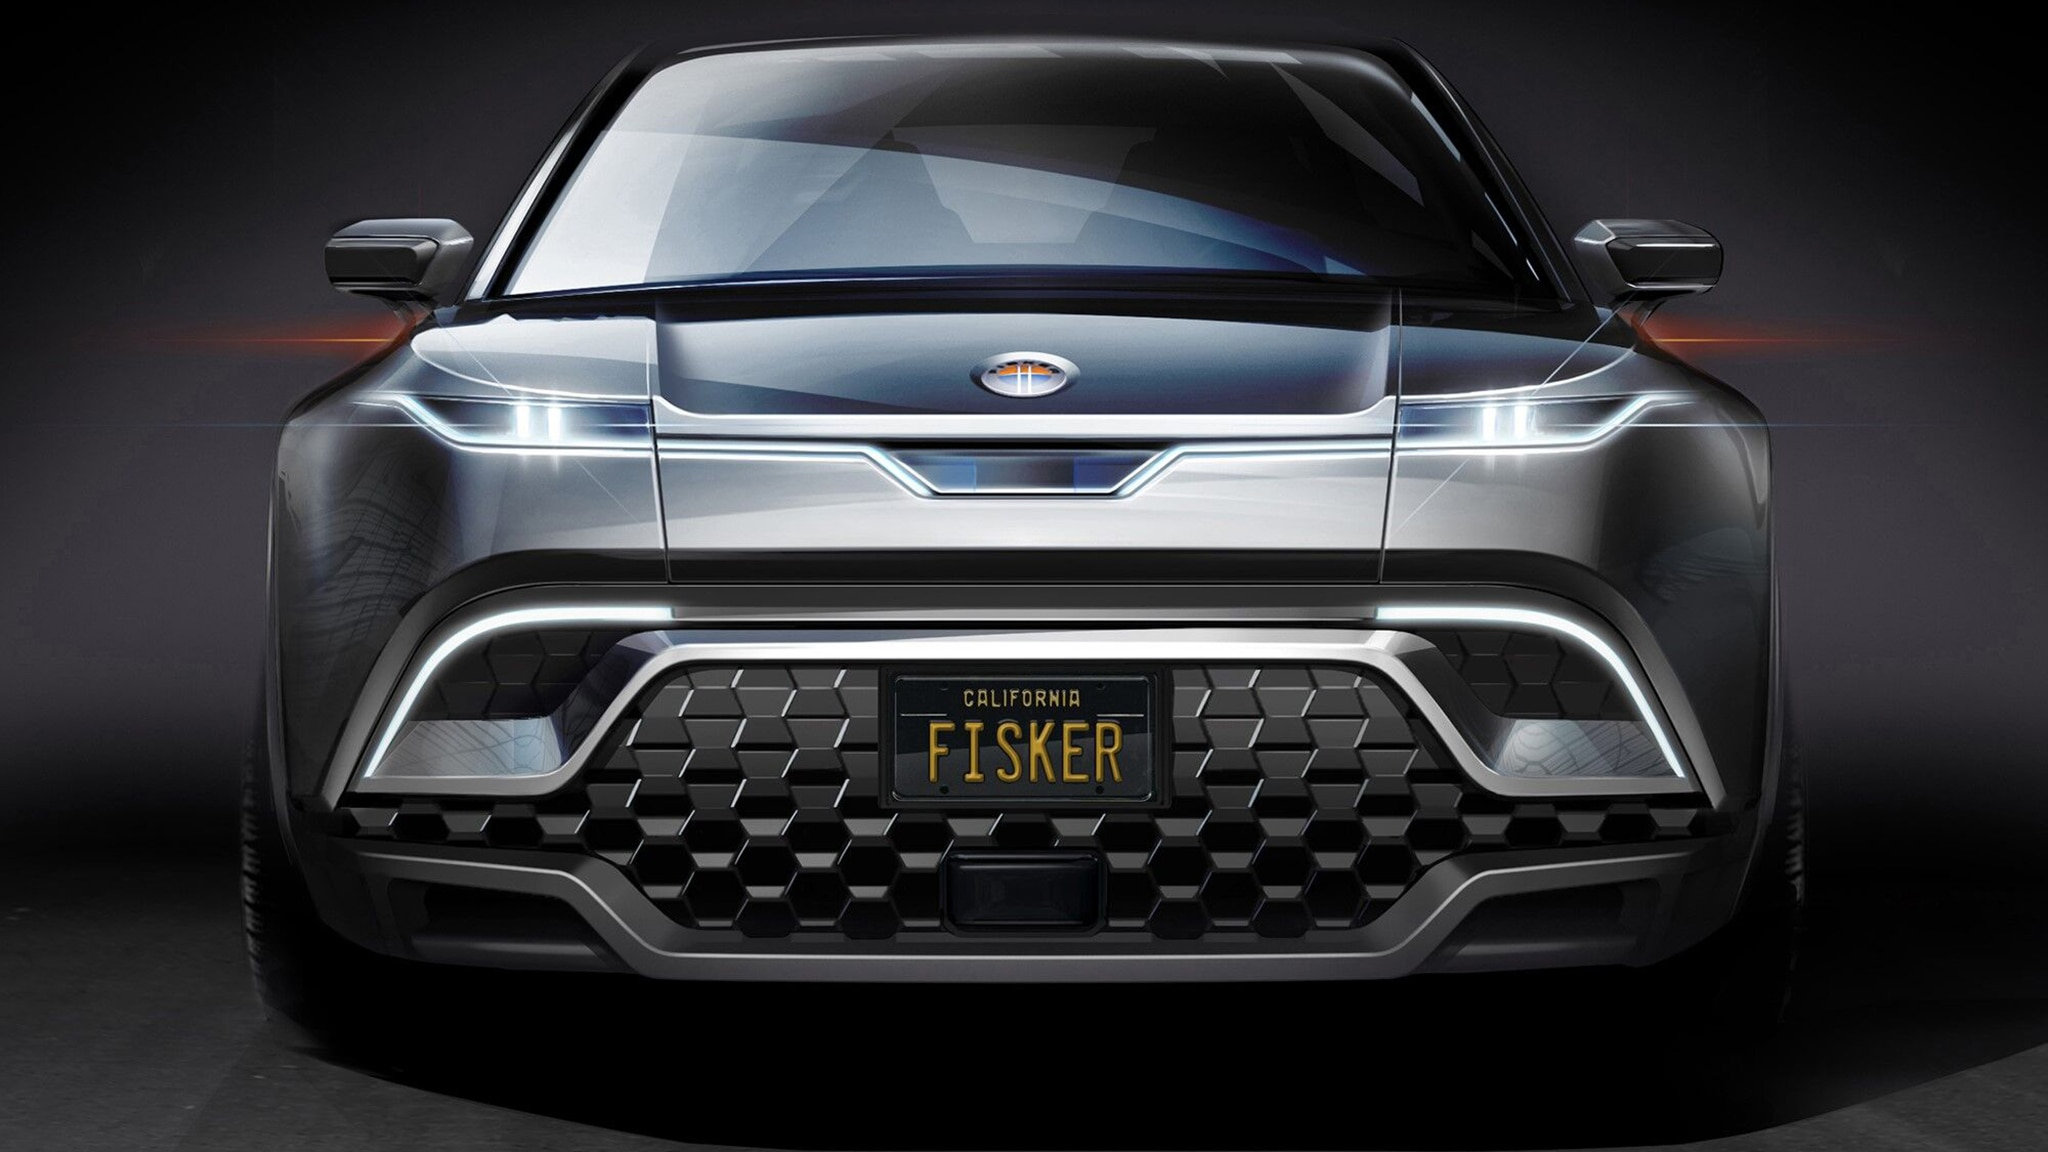 Fisker launches electric SUV starting at under US$40,000